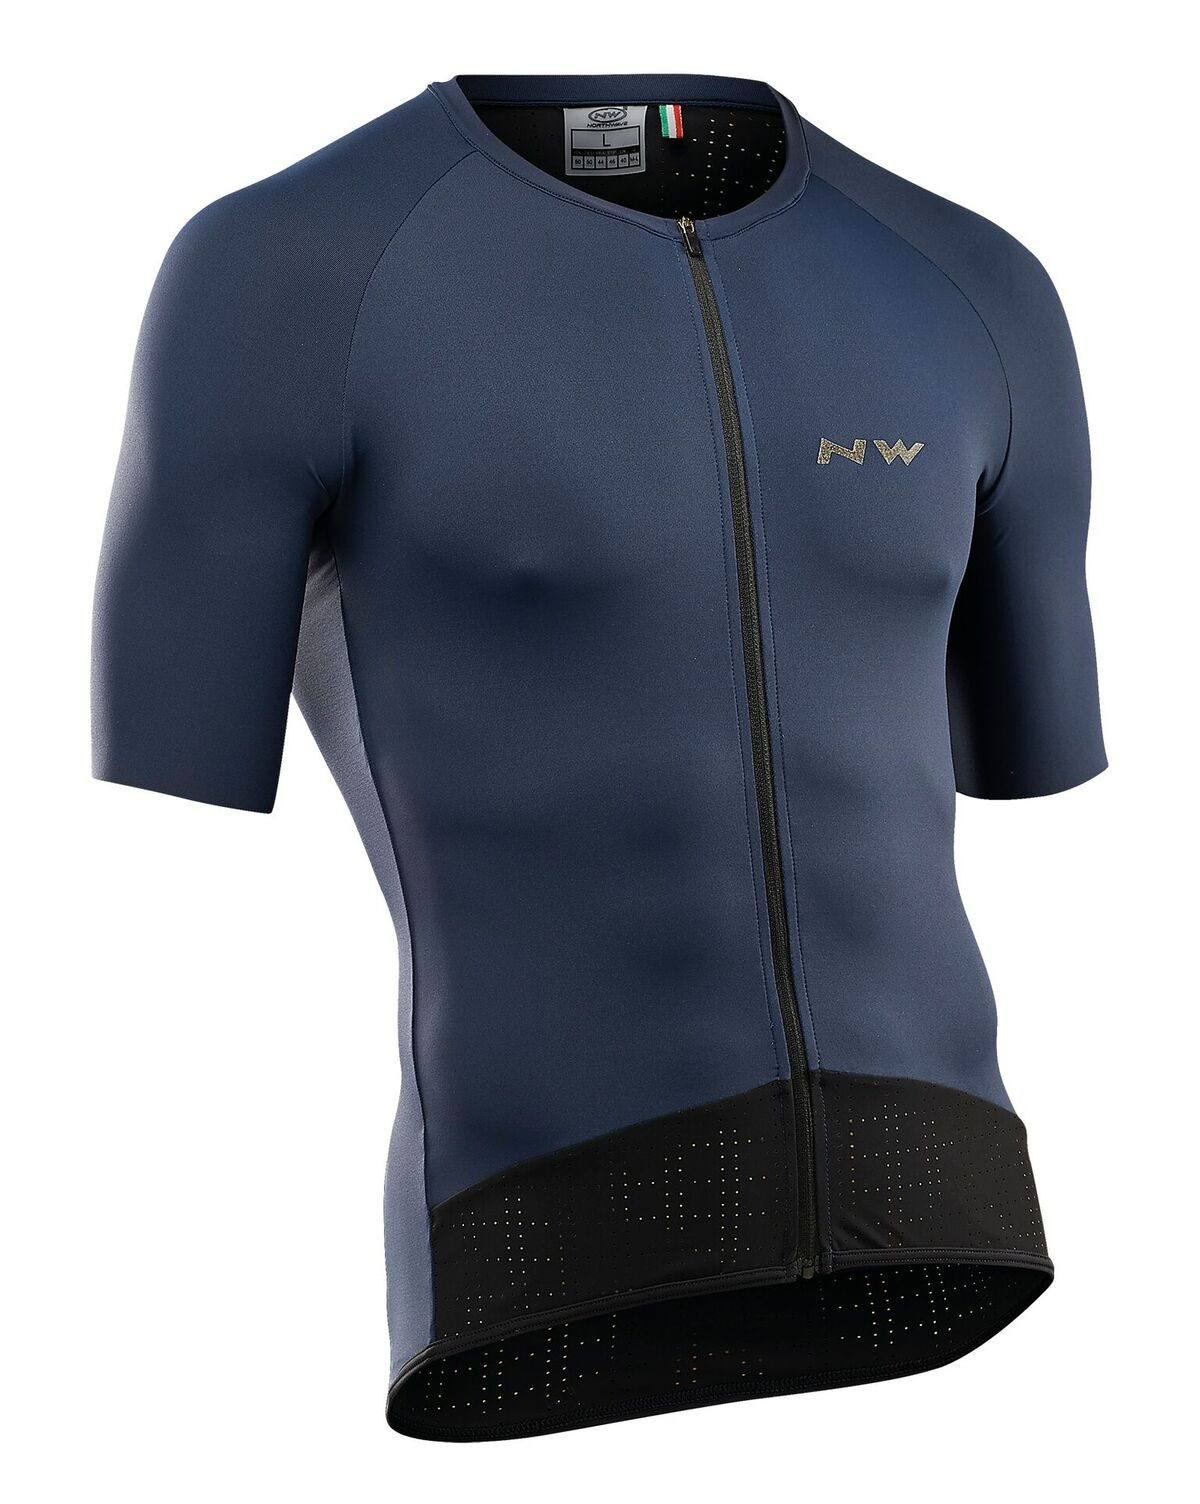 Maglia Ciclismo Maniche Corte Northwave Storm Air Jersey Short Sleeves BLUE